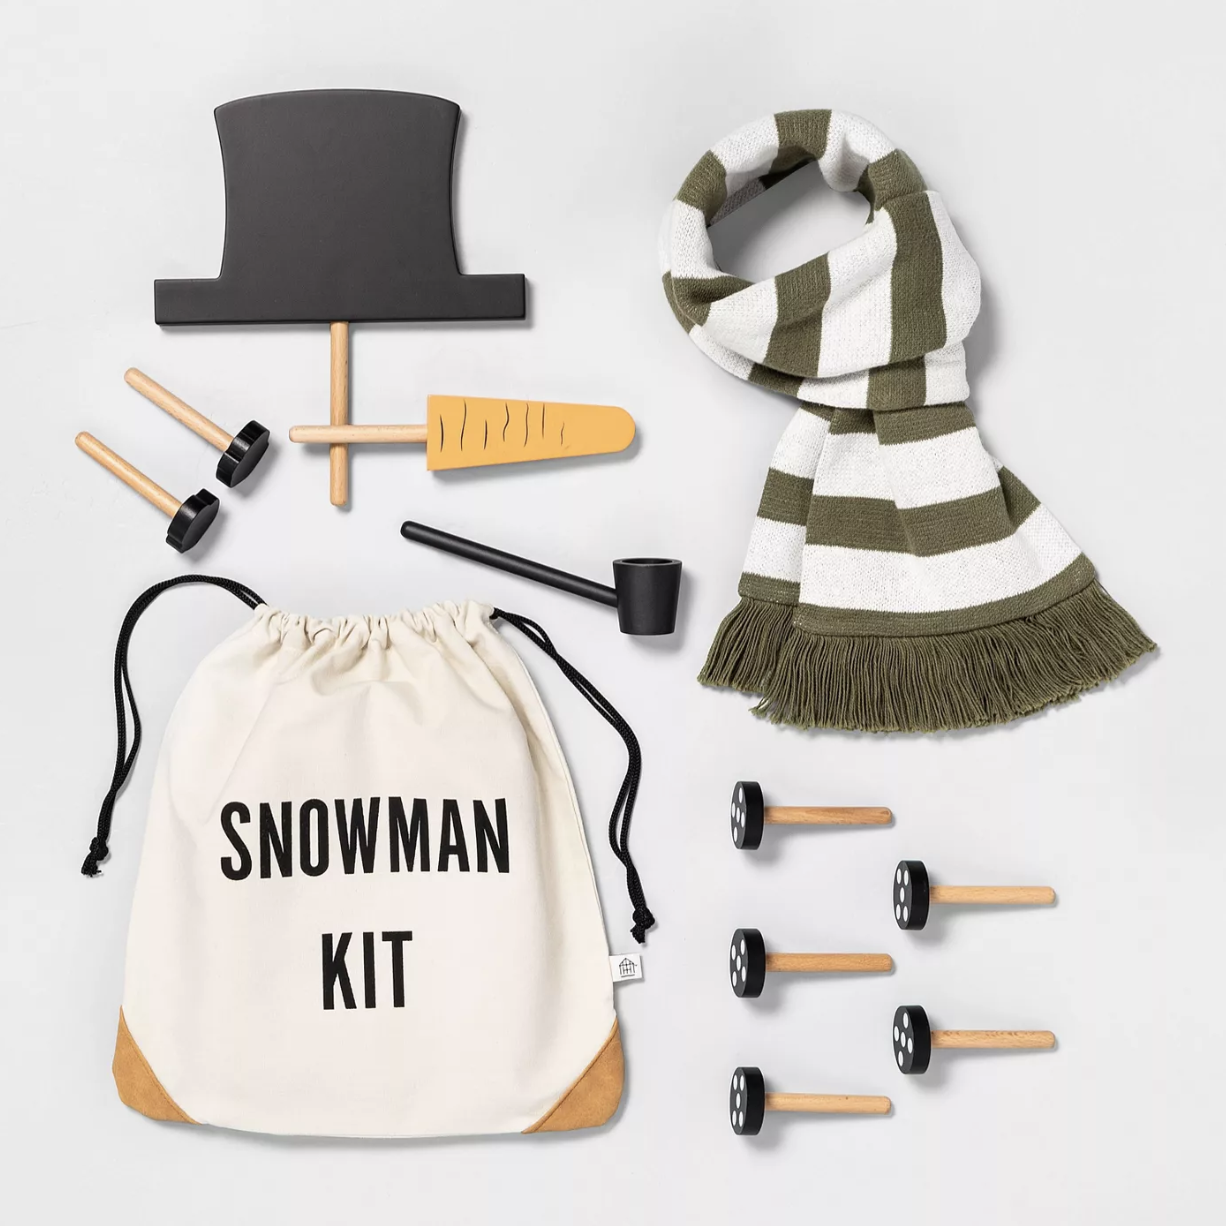 Target's Snowman Kit Adds the Finishing Touches to Your Snowman